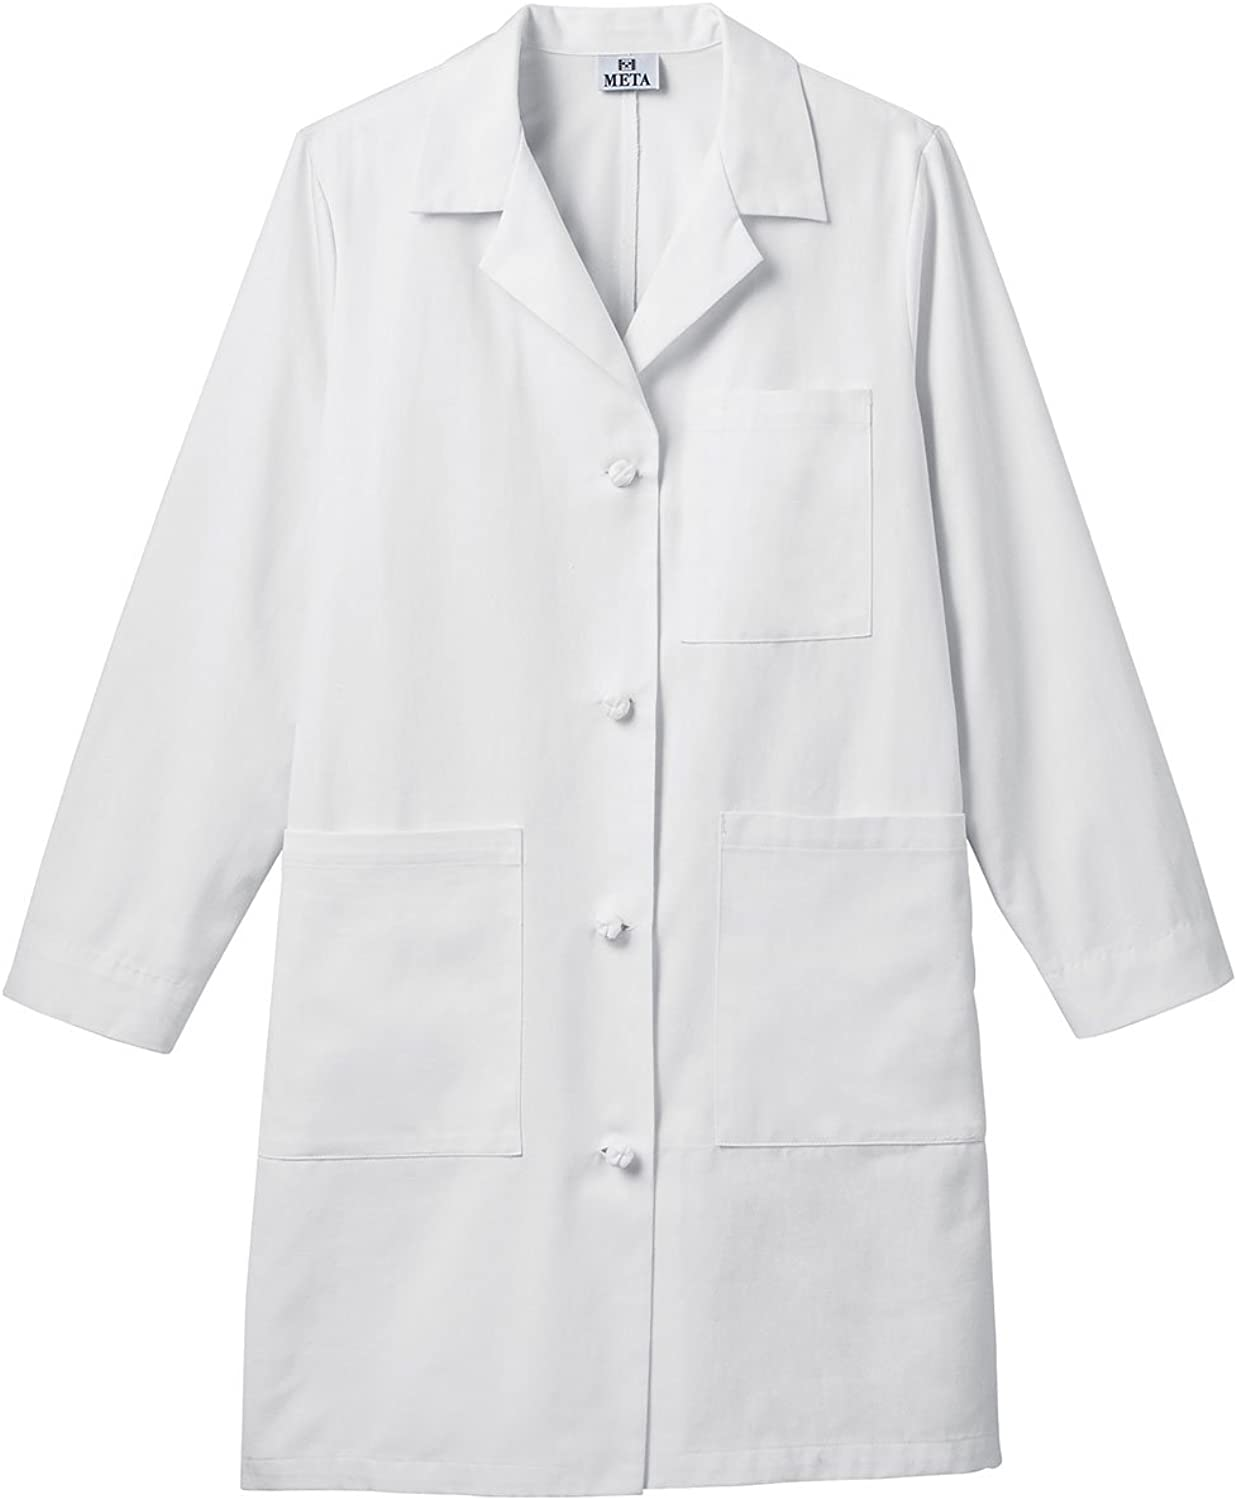 Meta 763 Women's 38  Knot Button iPad Lab Coat